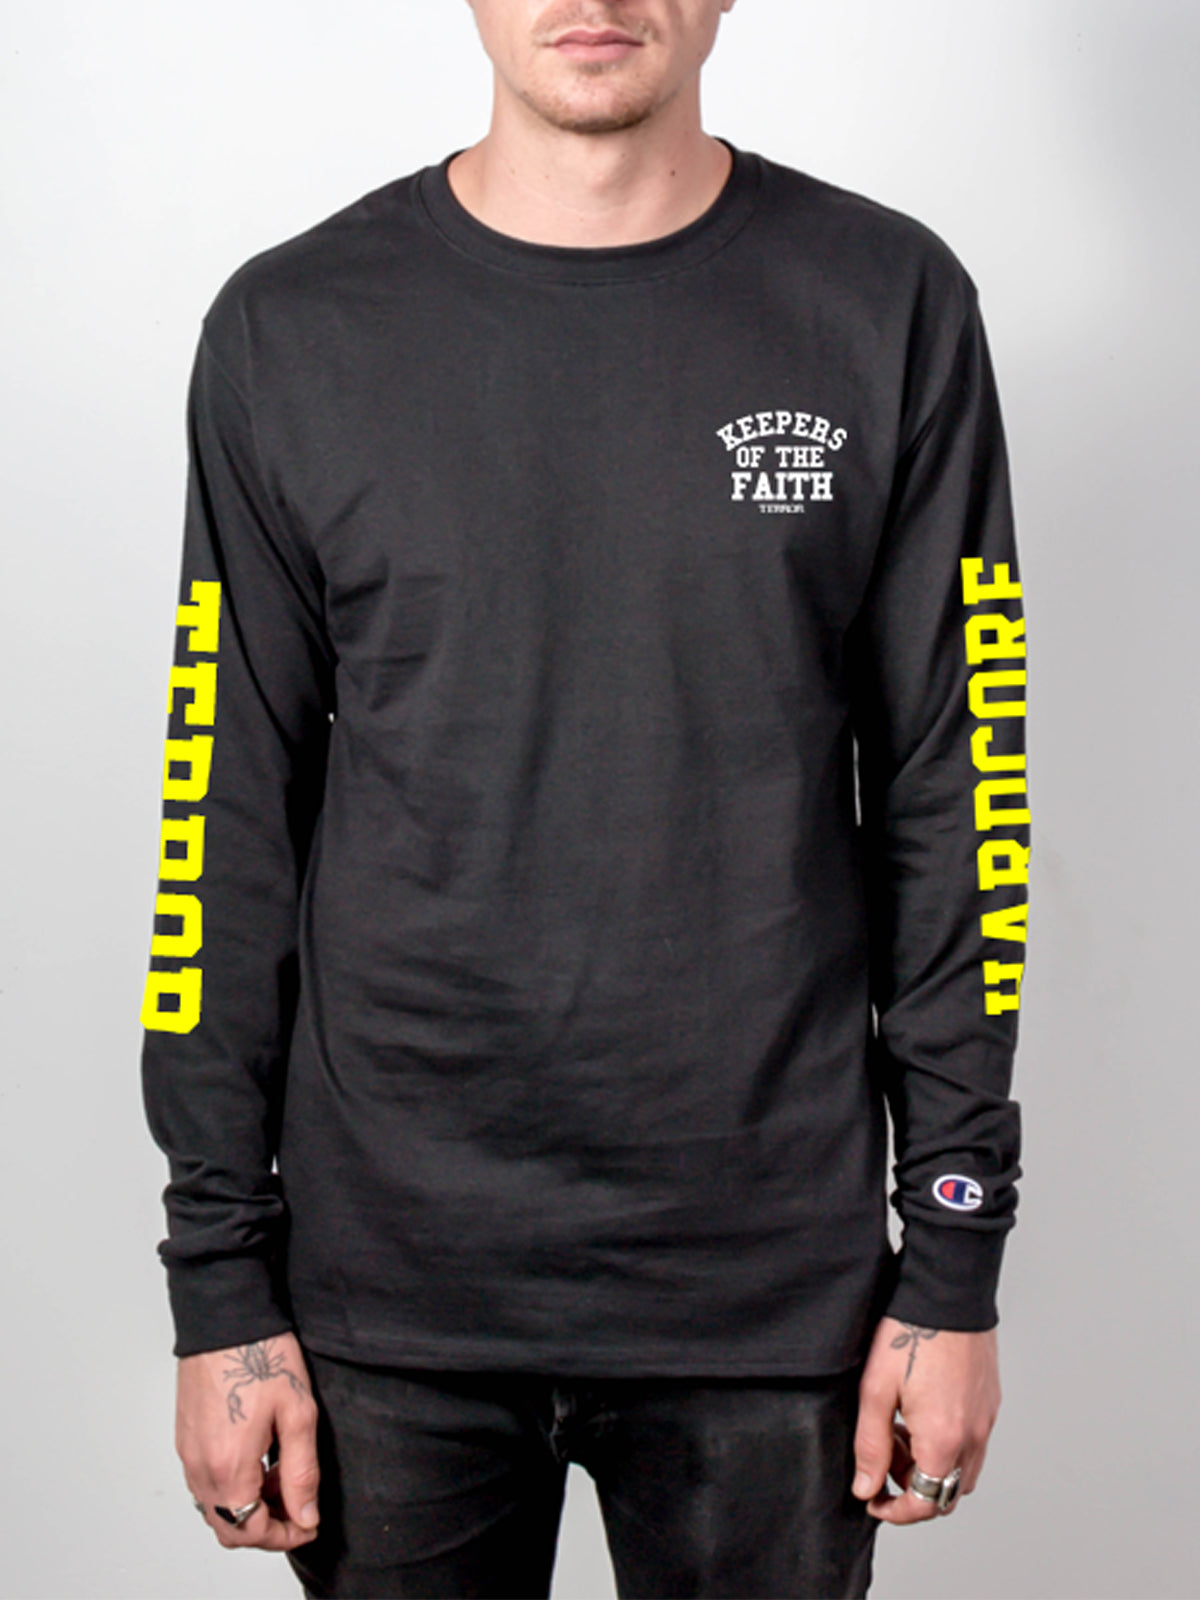 Terror - Generations Champion Longsleeve - Merch Limited